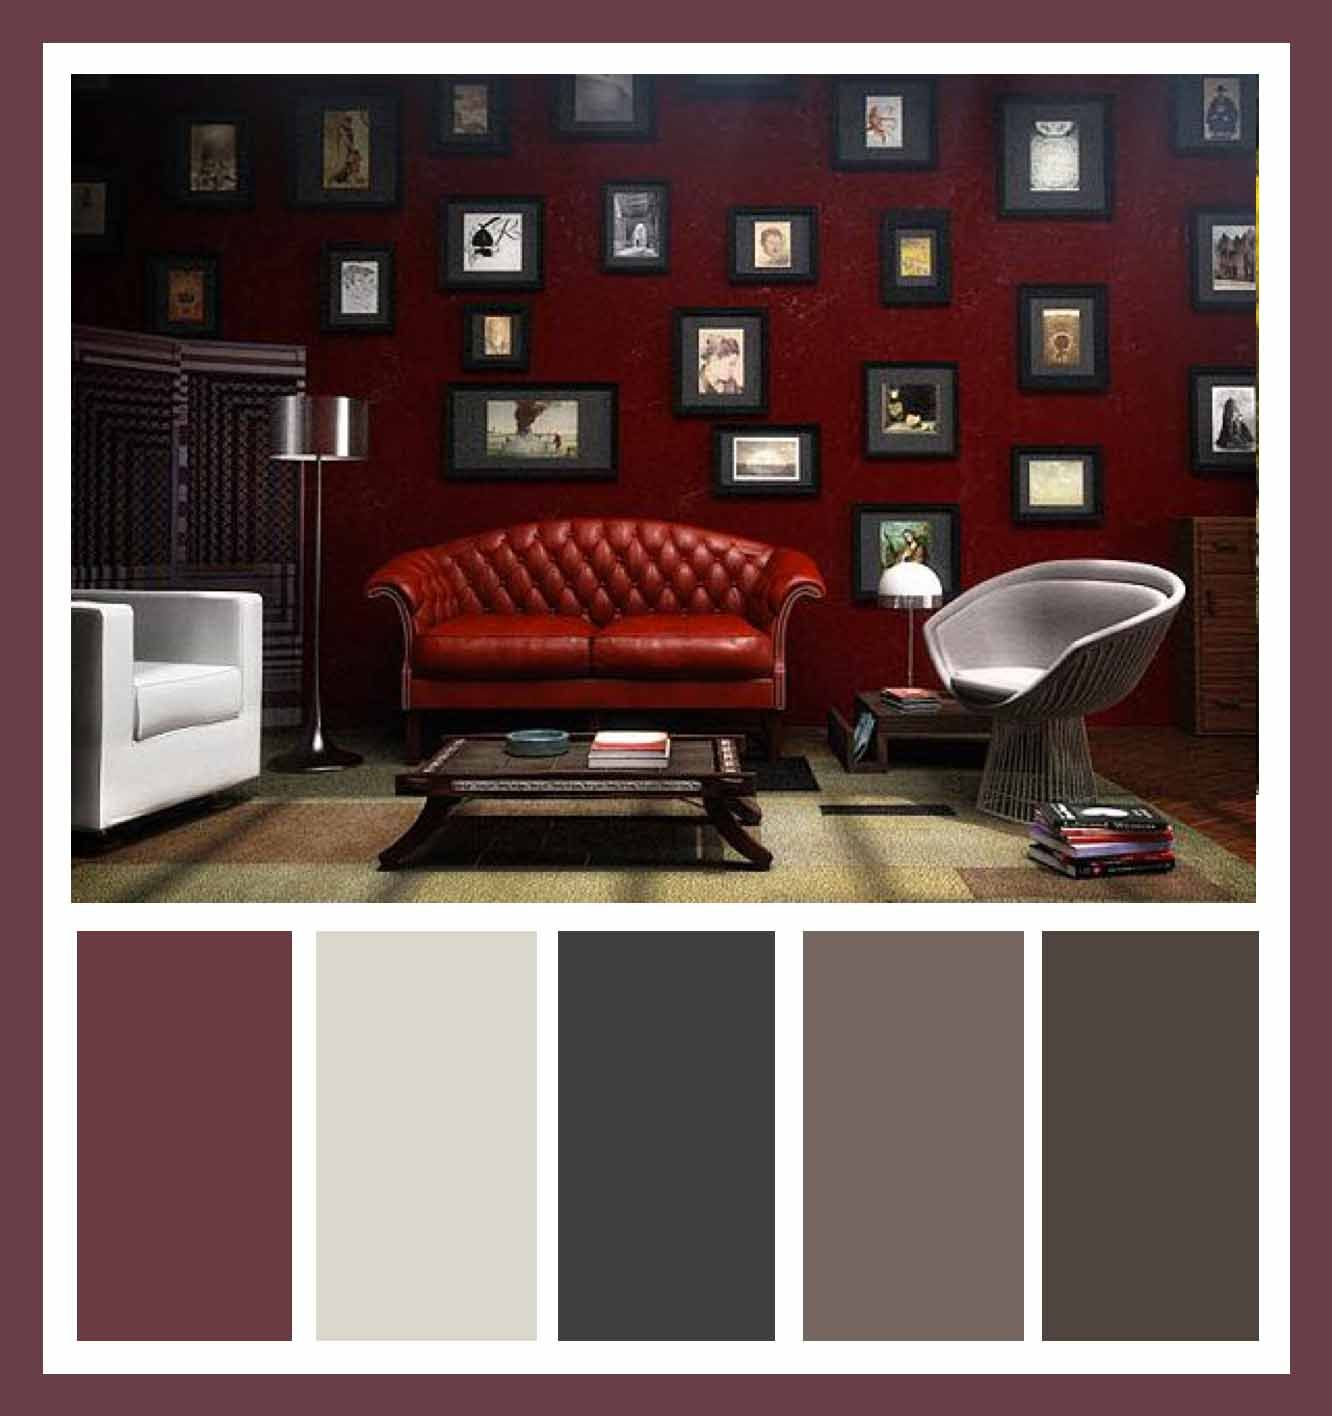 Living room red color combination - Cool Living Room With White And Red Colors Combination Tips Decor Living Room Red Sofa And White Couch In The Oriental Living Room